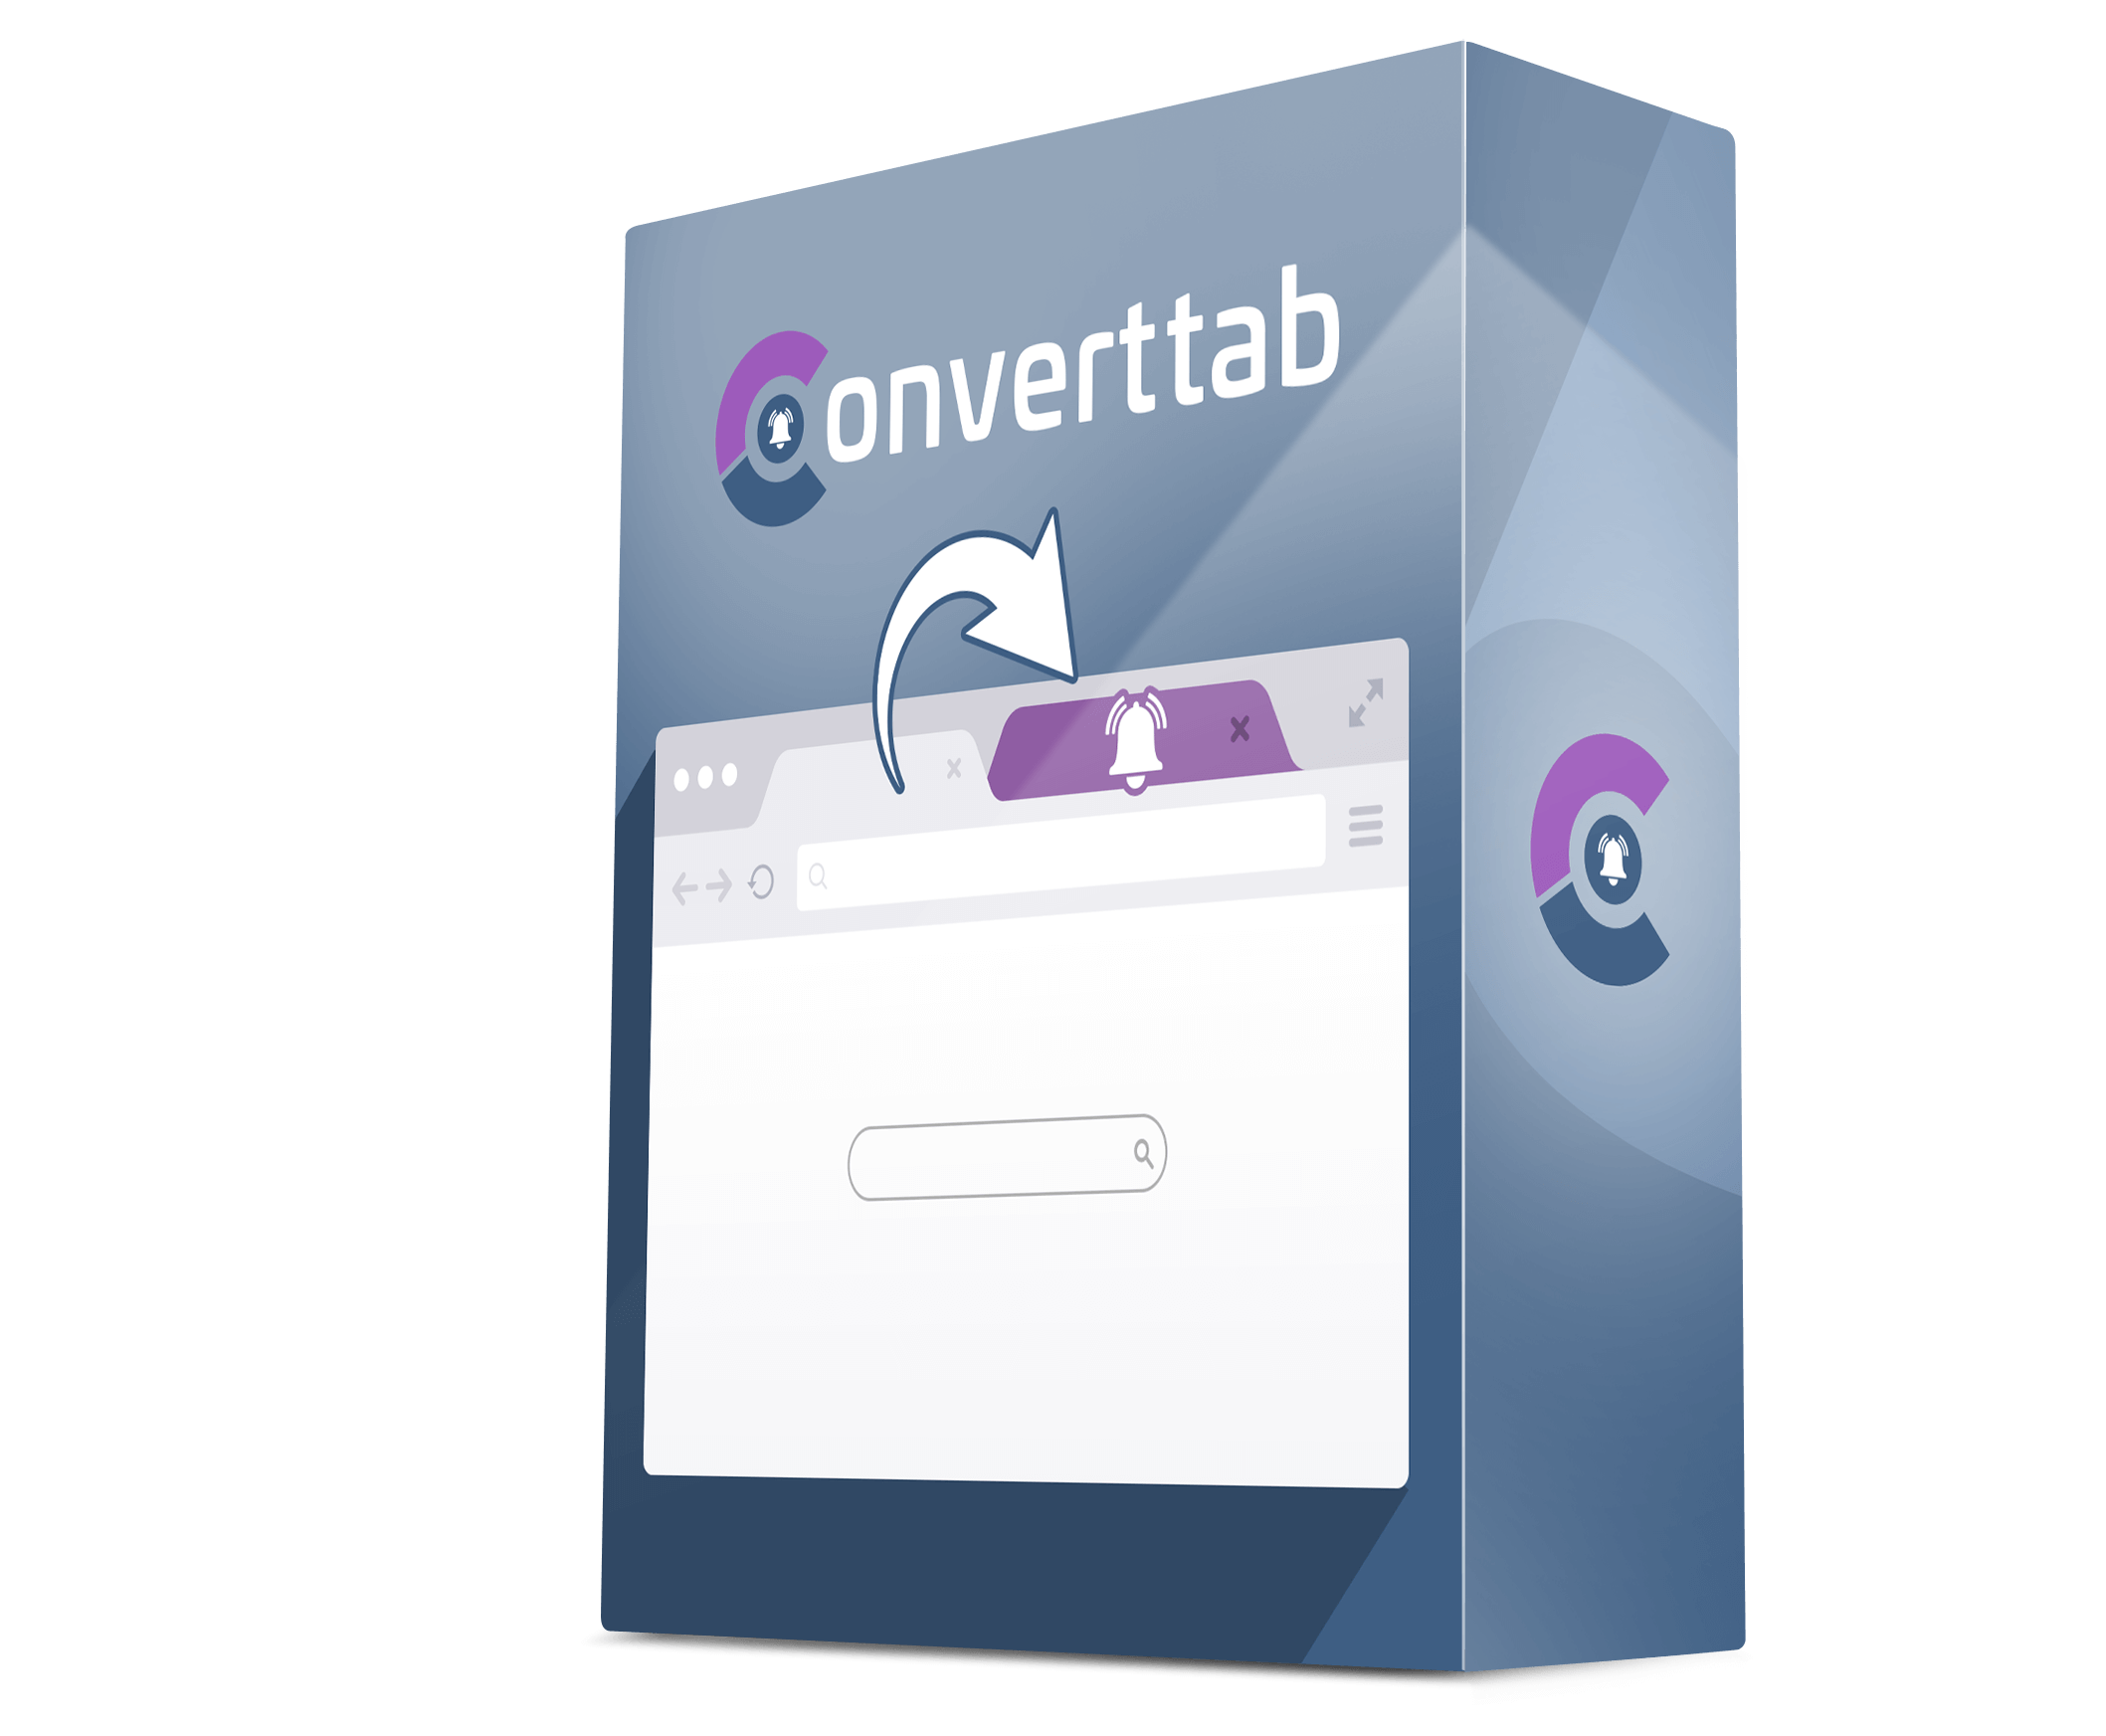 Converttab Box links